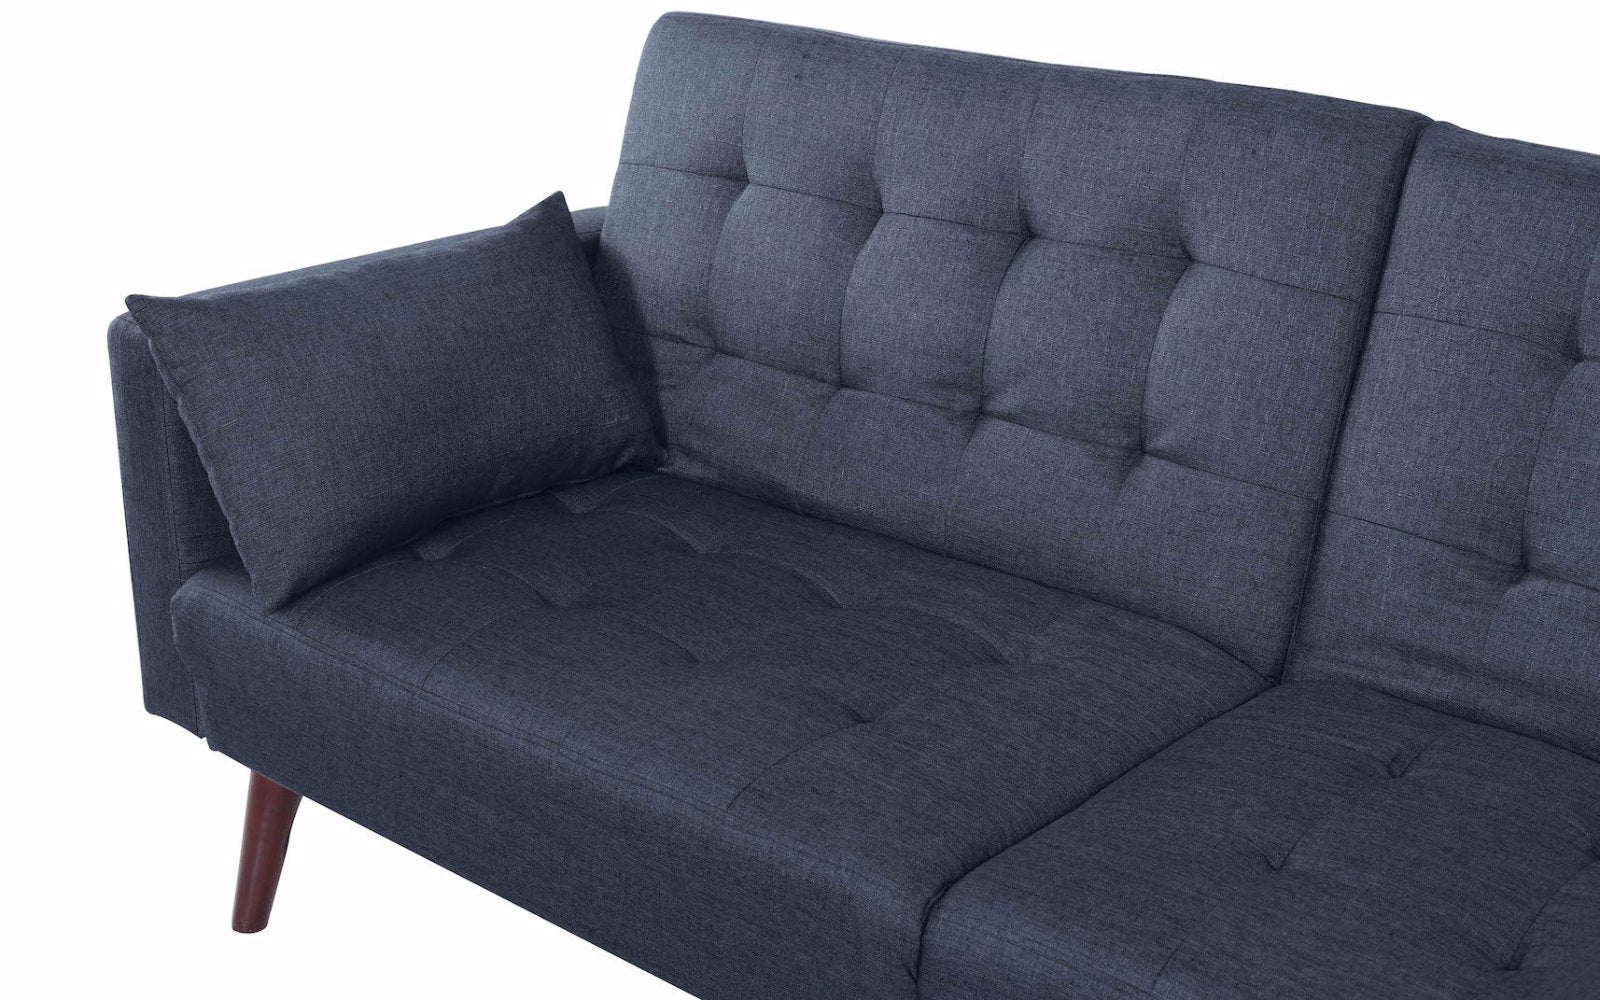 modern futon sofa bed. Dom Modern Linen Recliner Futon In Dark Grey Close Up Shot Sofa Bed H